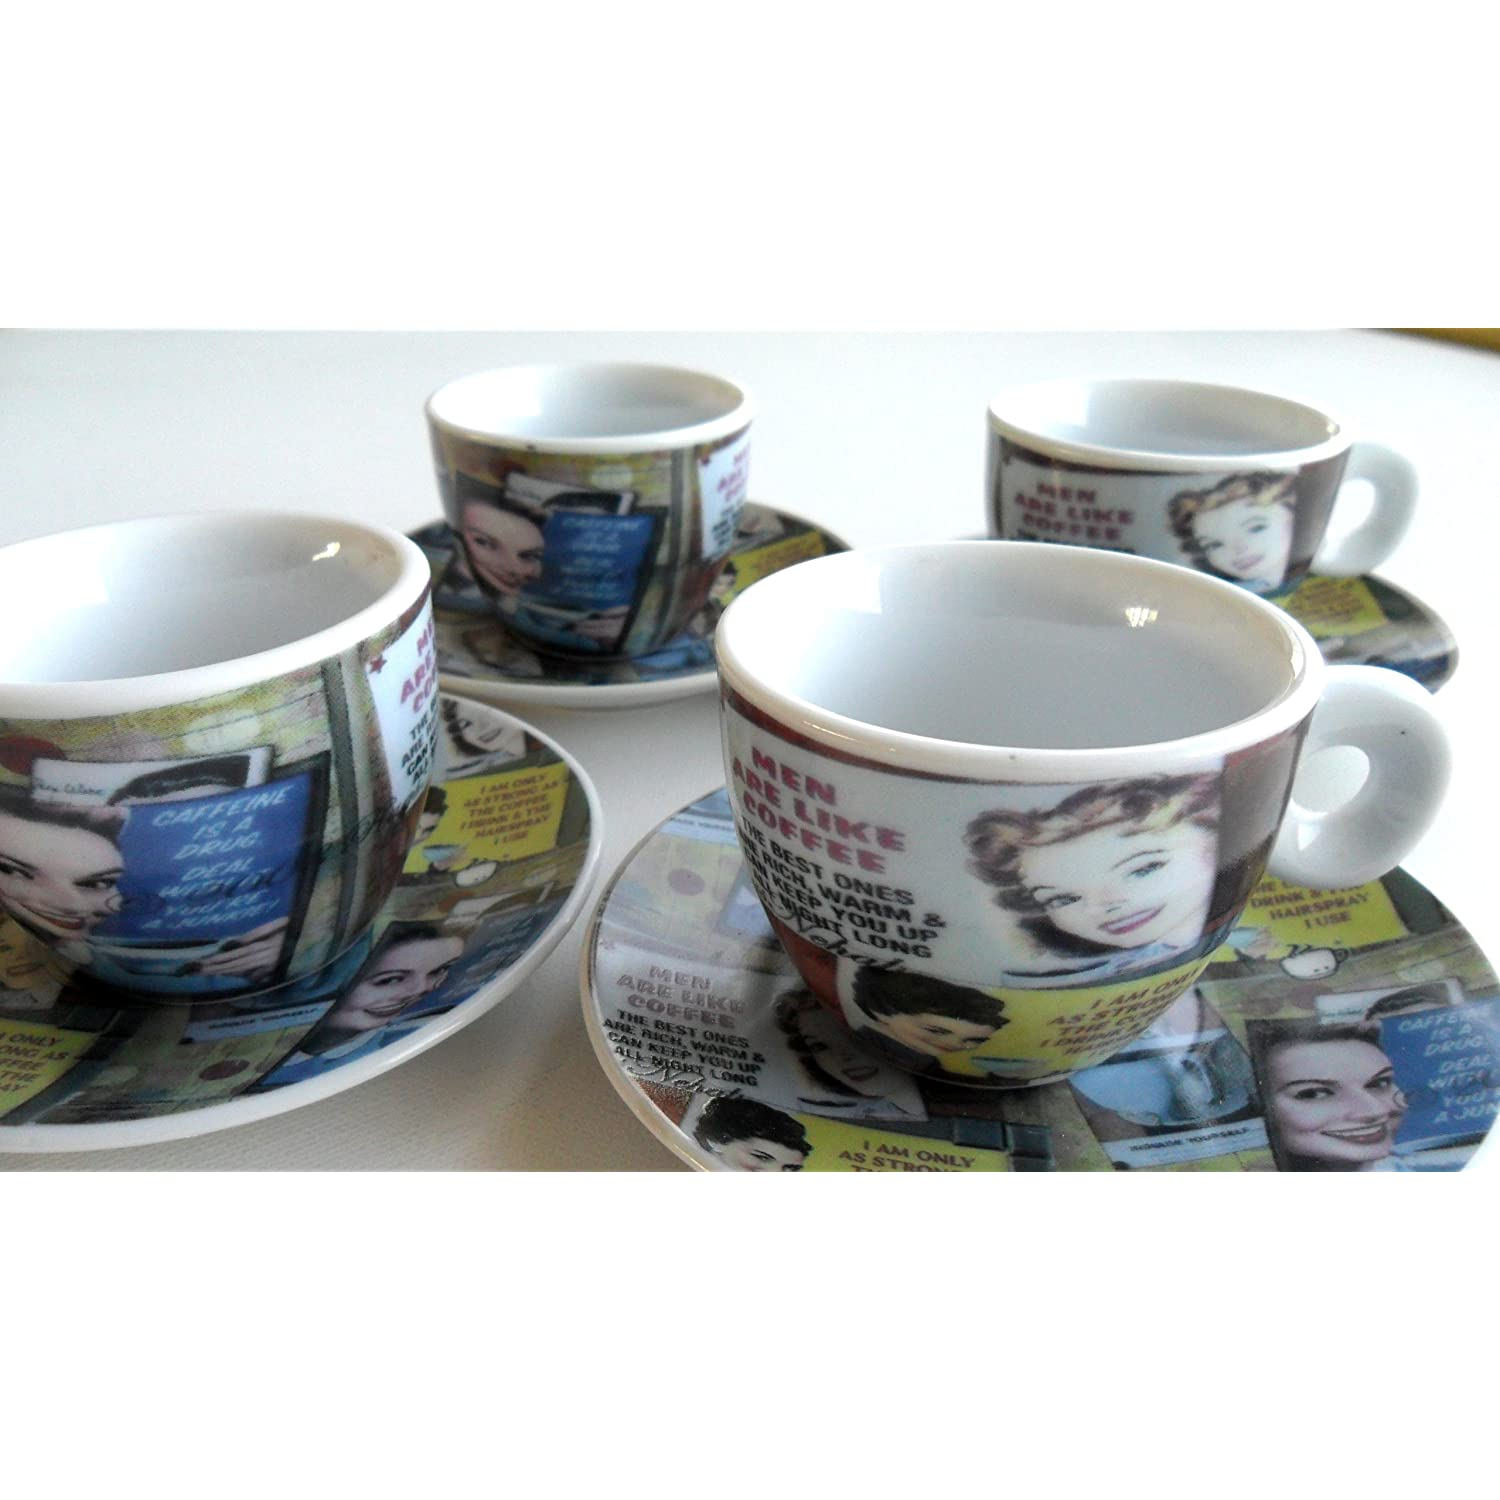 Espresso Coffee Cups Set of 4 Demitasse Cups with Clever Lady's Sayings